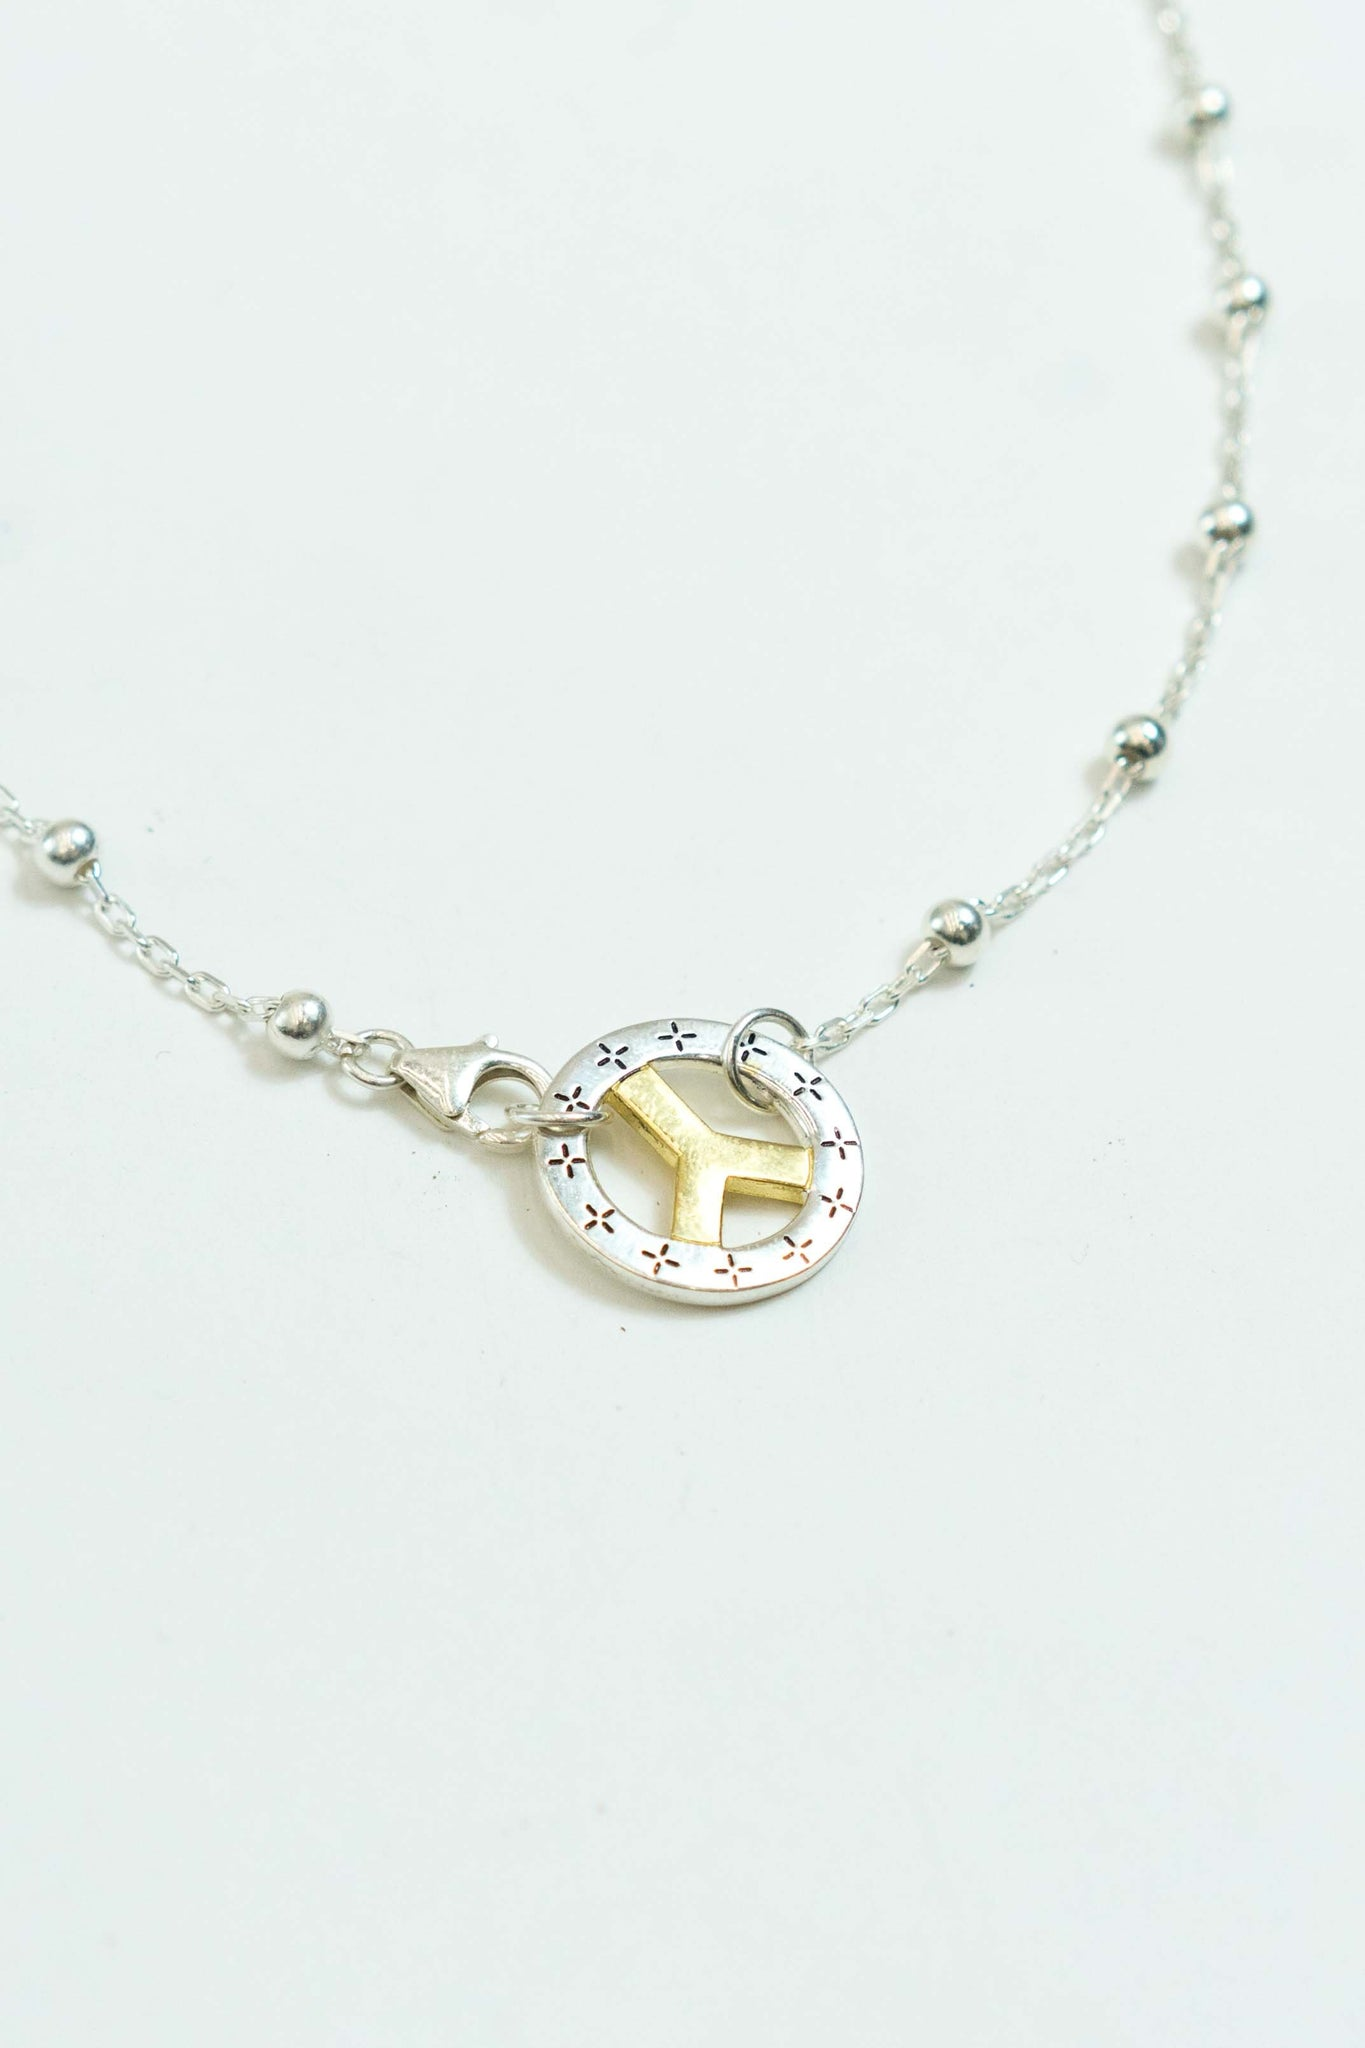 Bead Link Chain in Silver/14K Gold